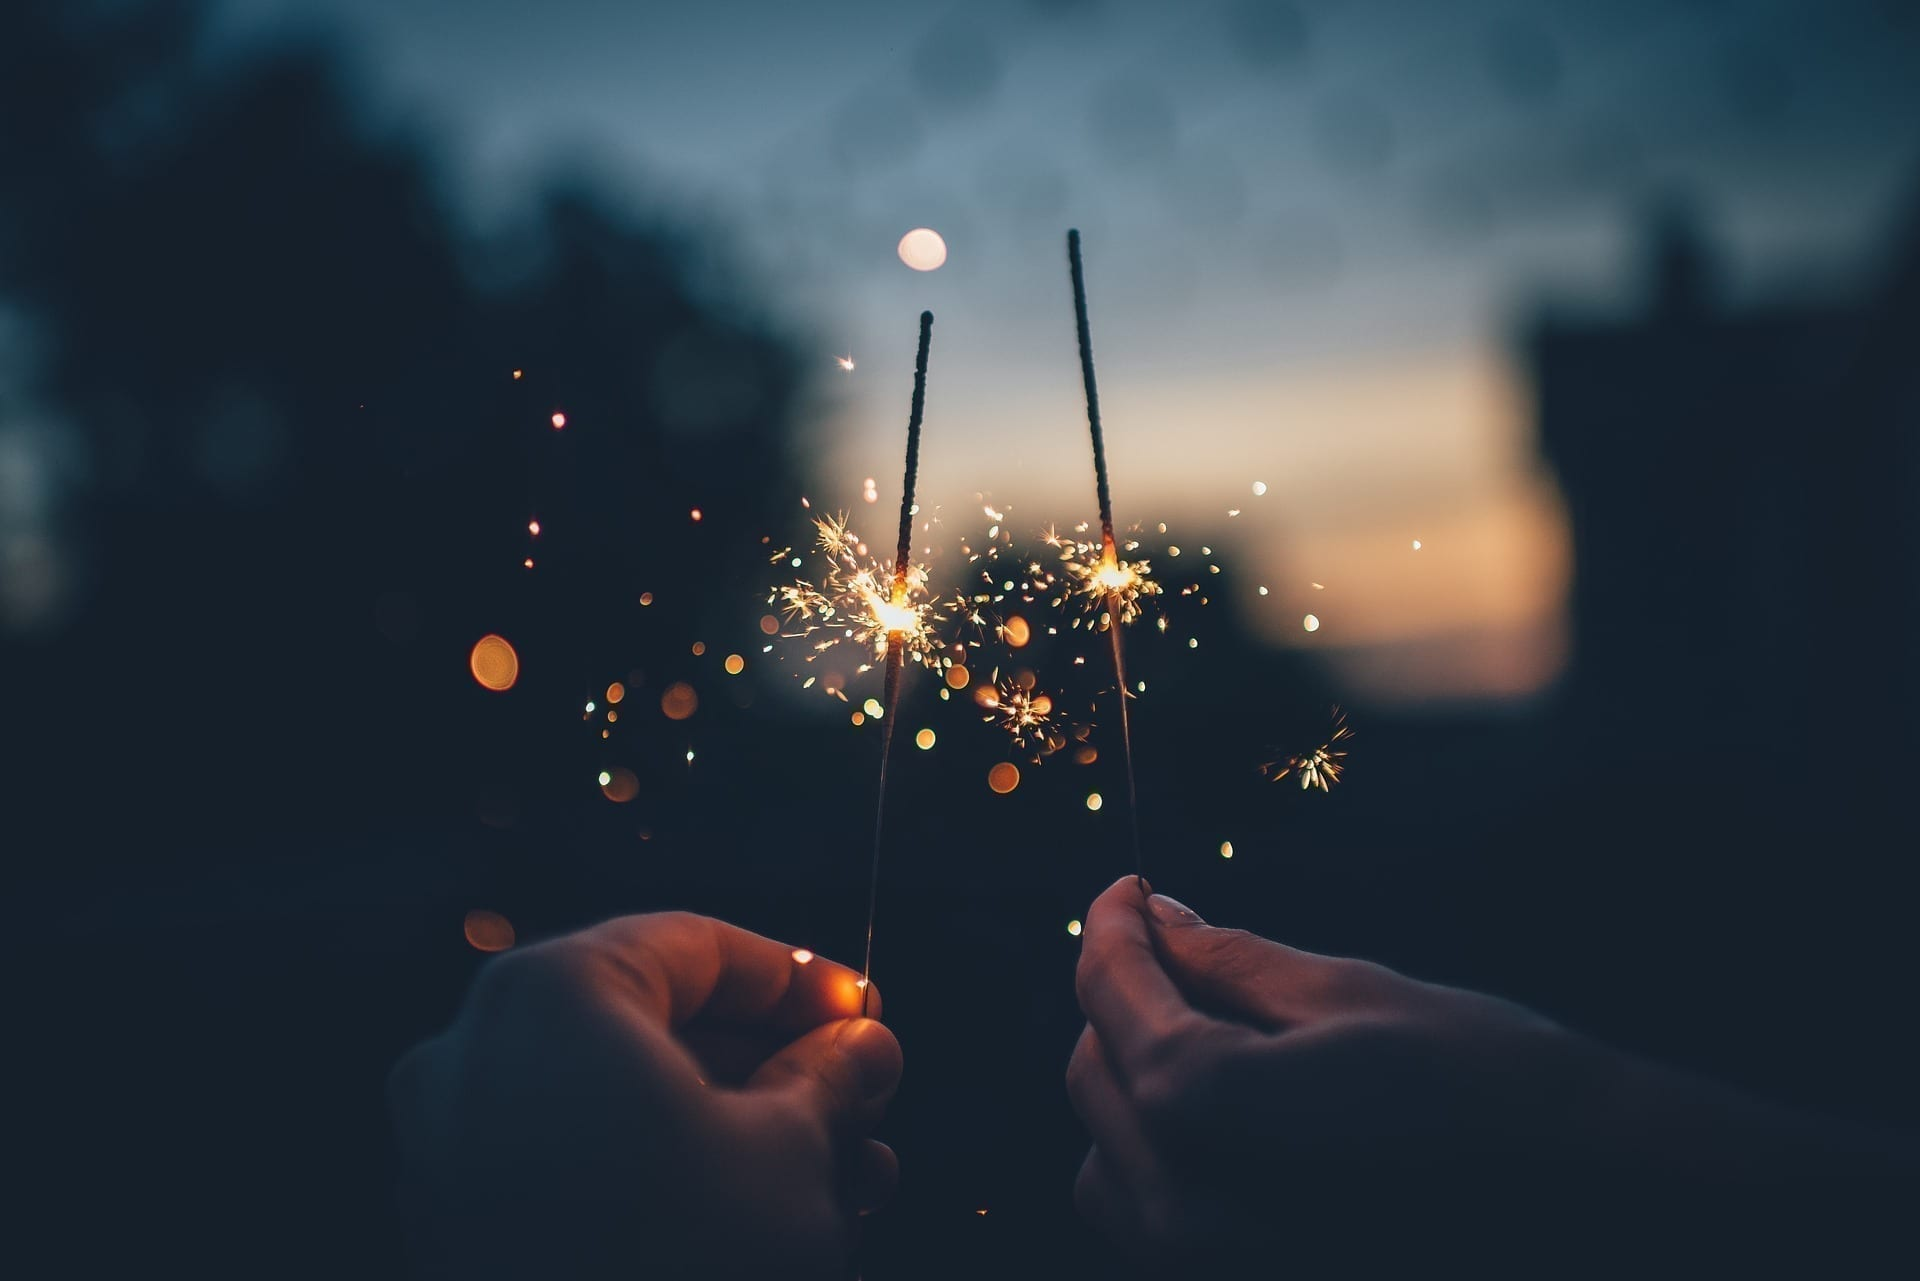 Two hands holding lit sparklers in front of a sunset